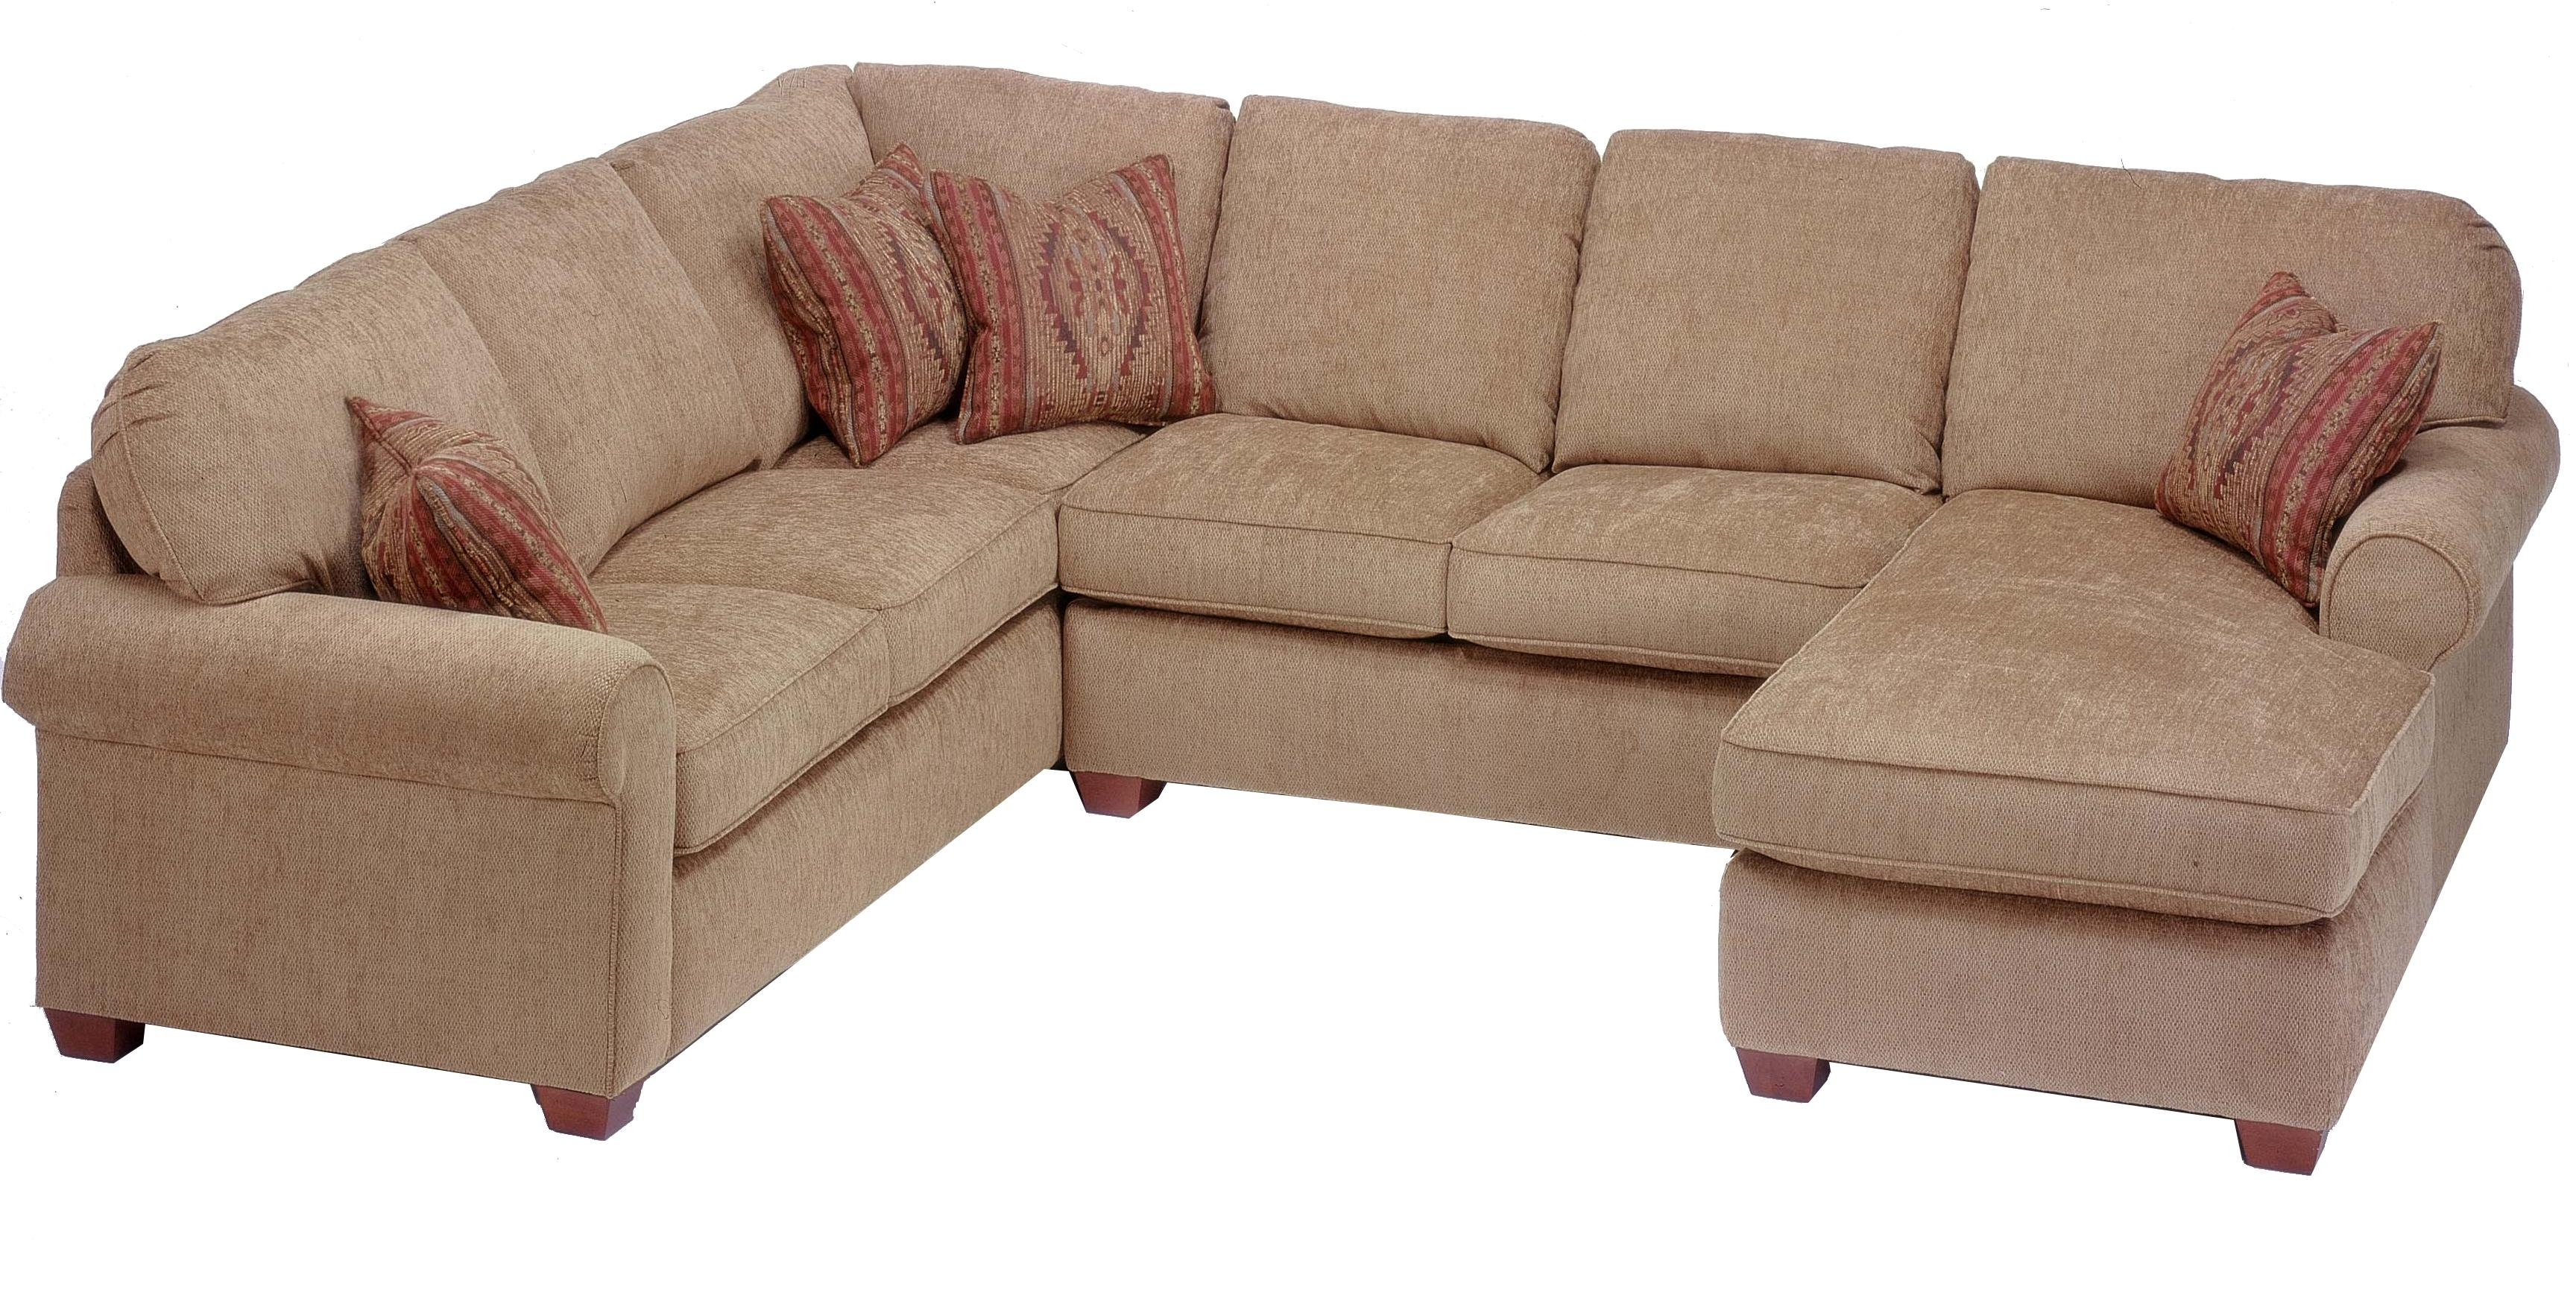 Preferred Flexsteel Thornton 3 Piece Sectional With Chaise – Ahfa – Sofa Within Nebraska Furniture Mart Sectional Sofas (View 14 of 20)